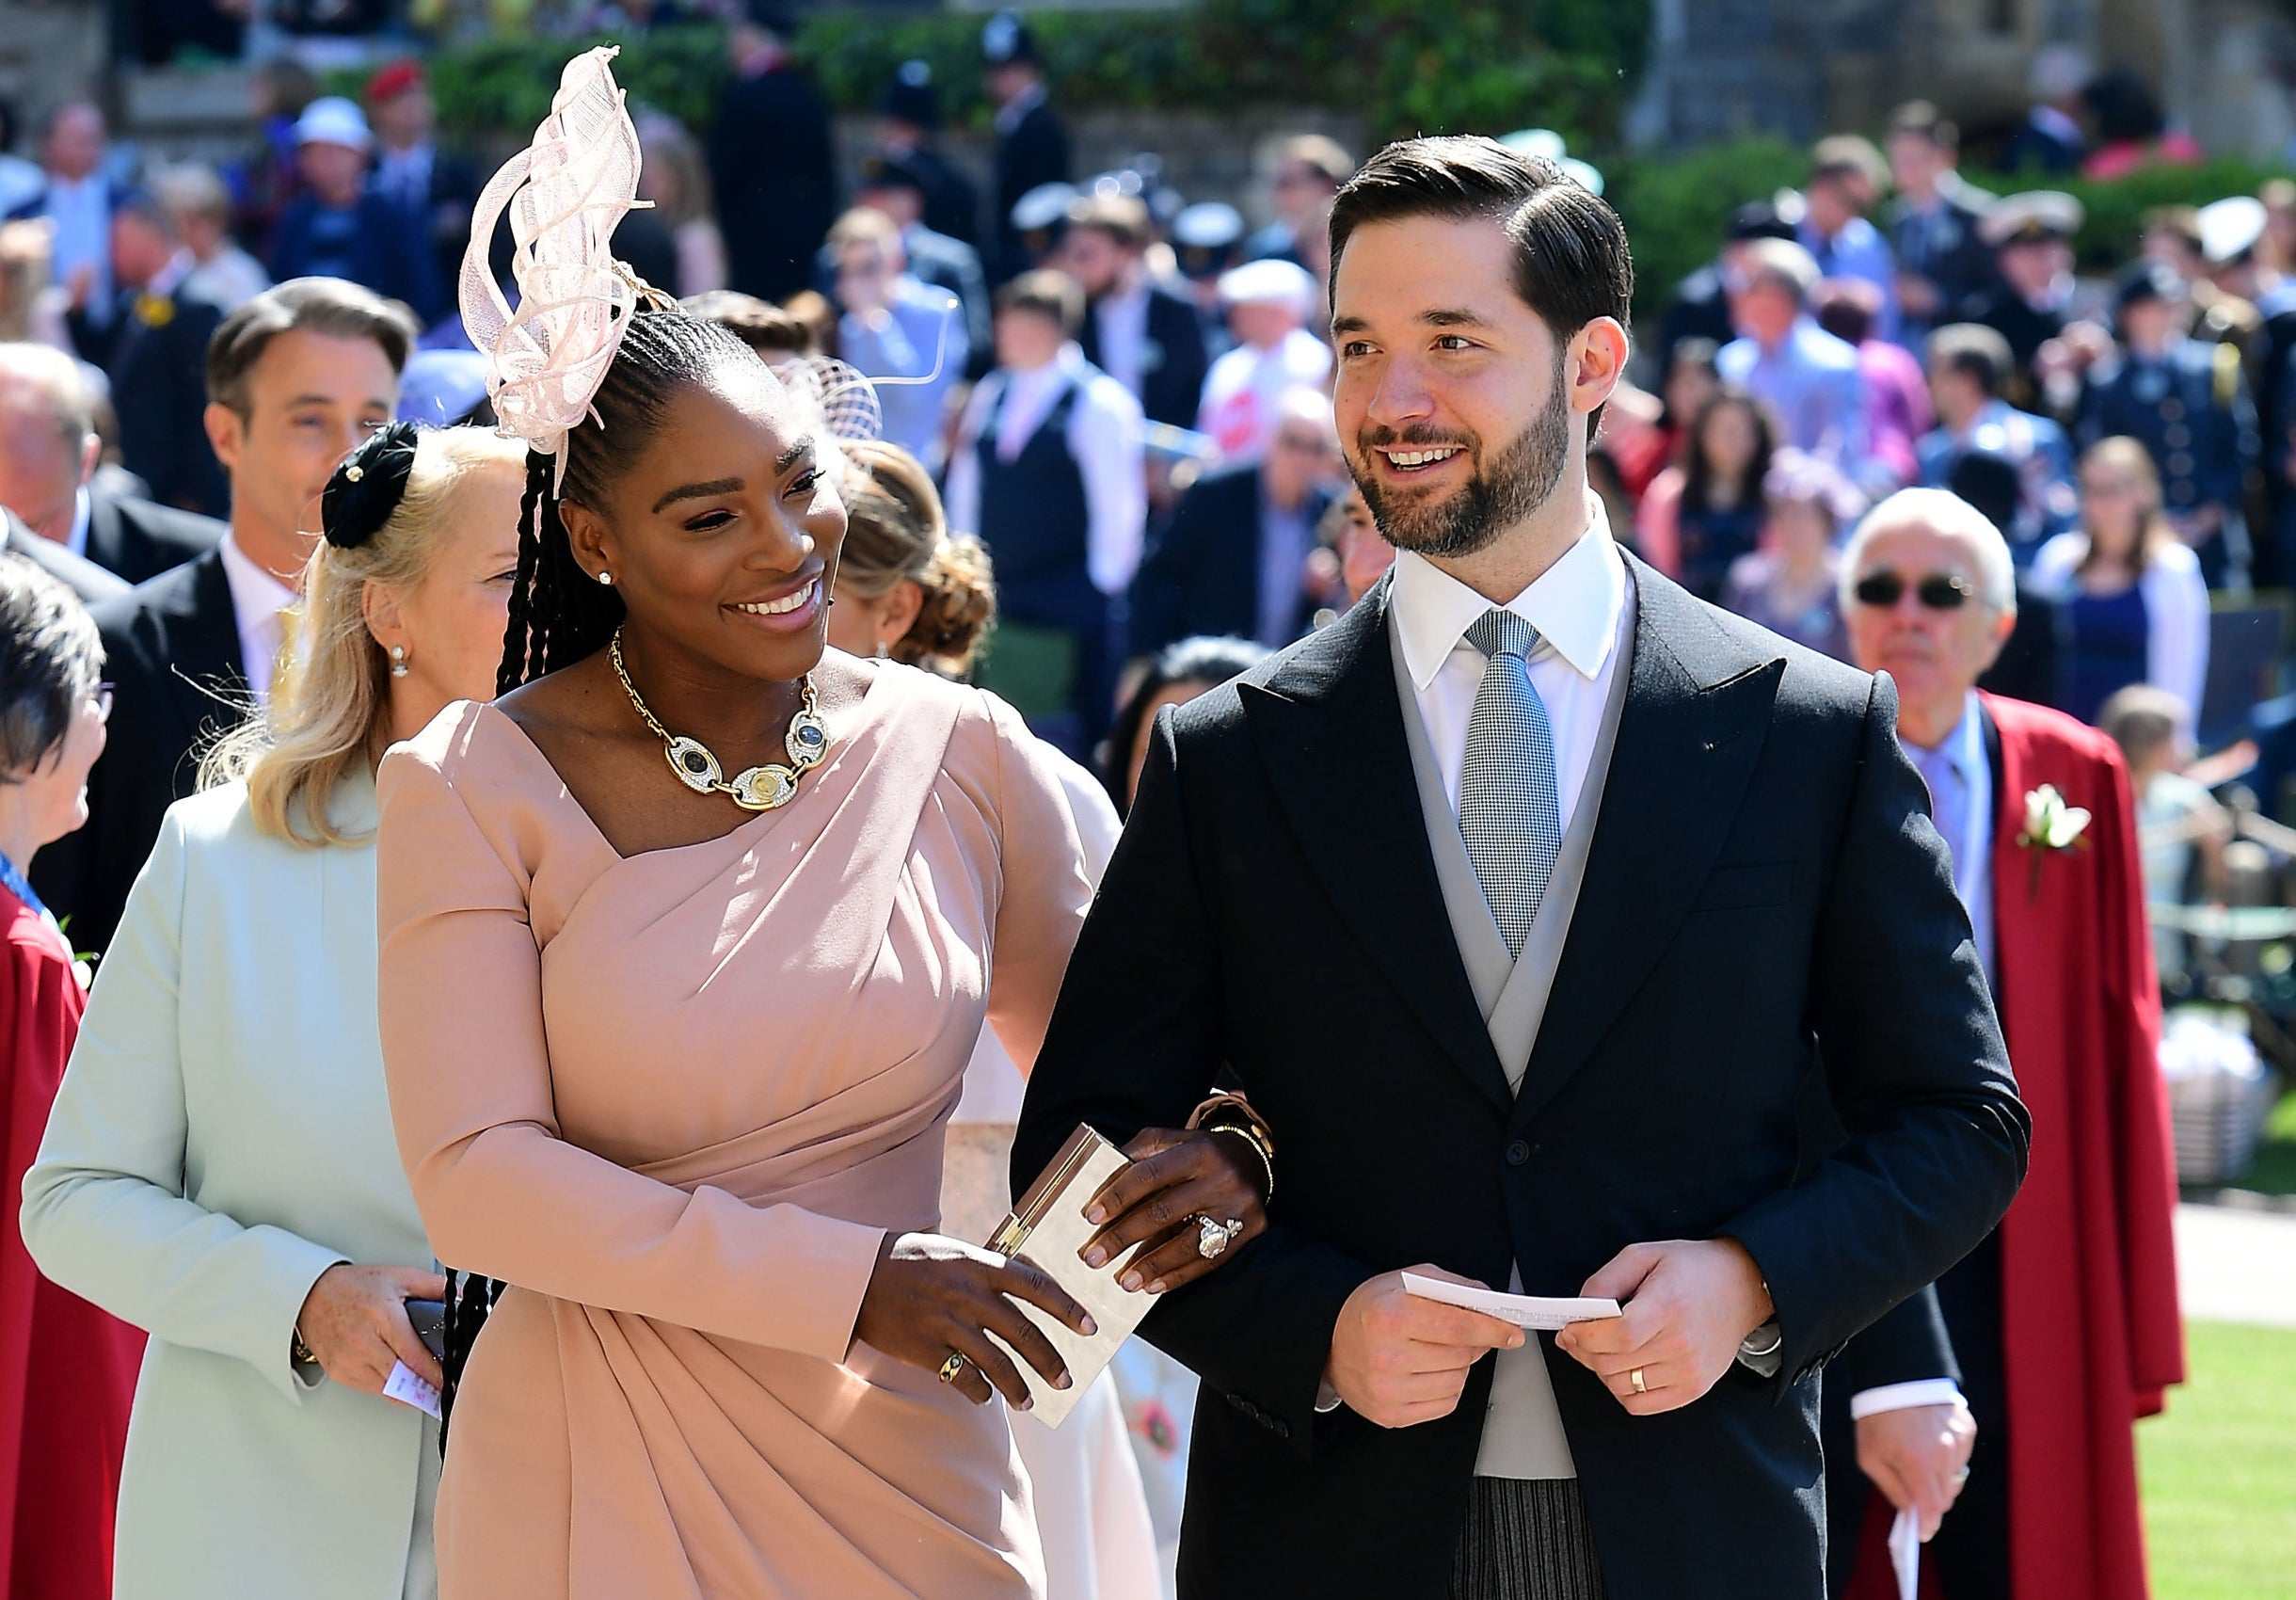 Serena Williams reveals the amazing relationship advice Oprah gave her